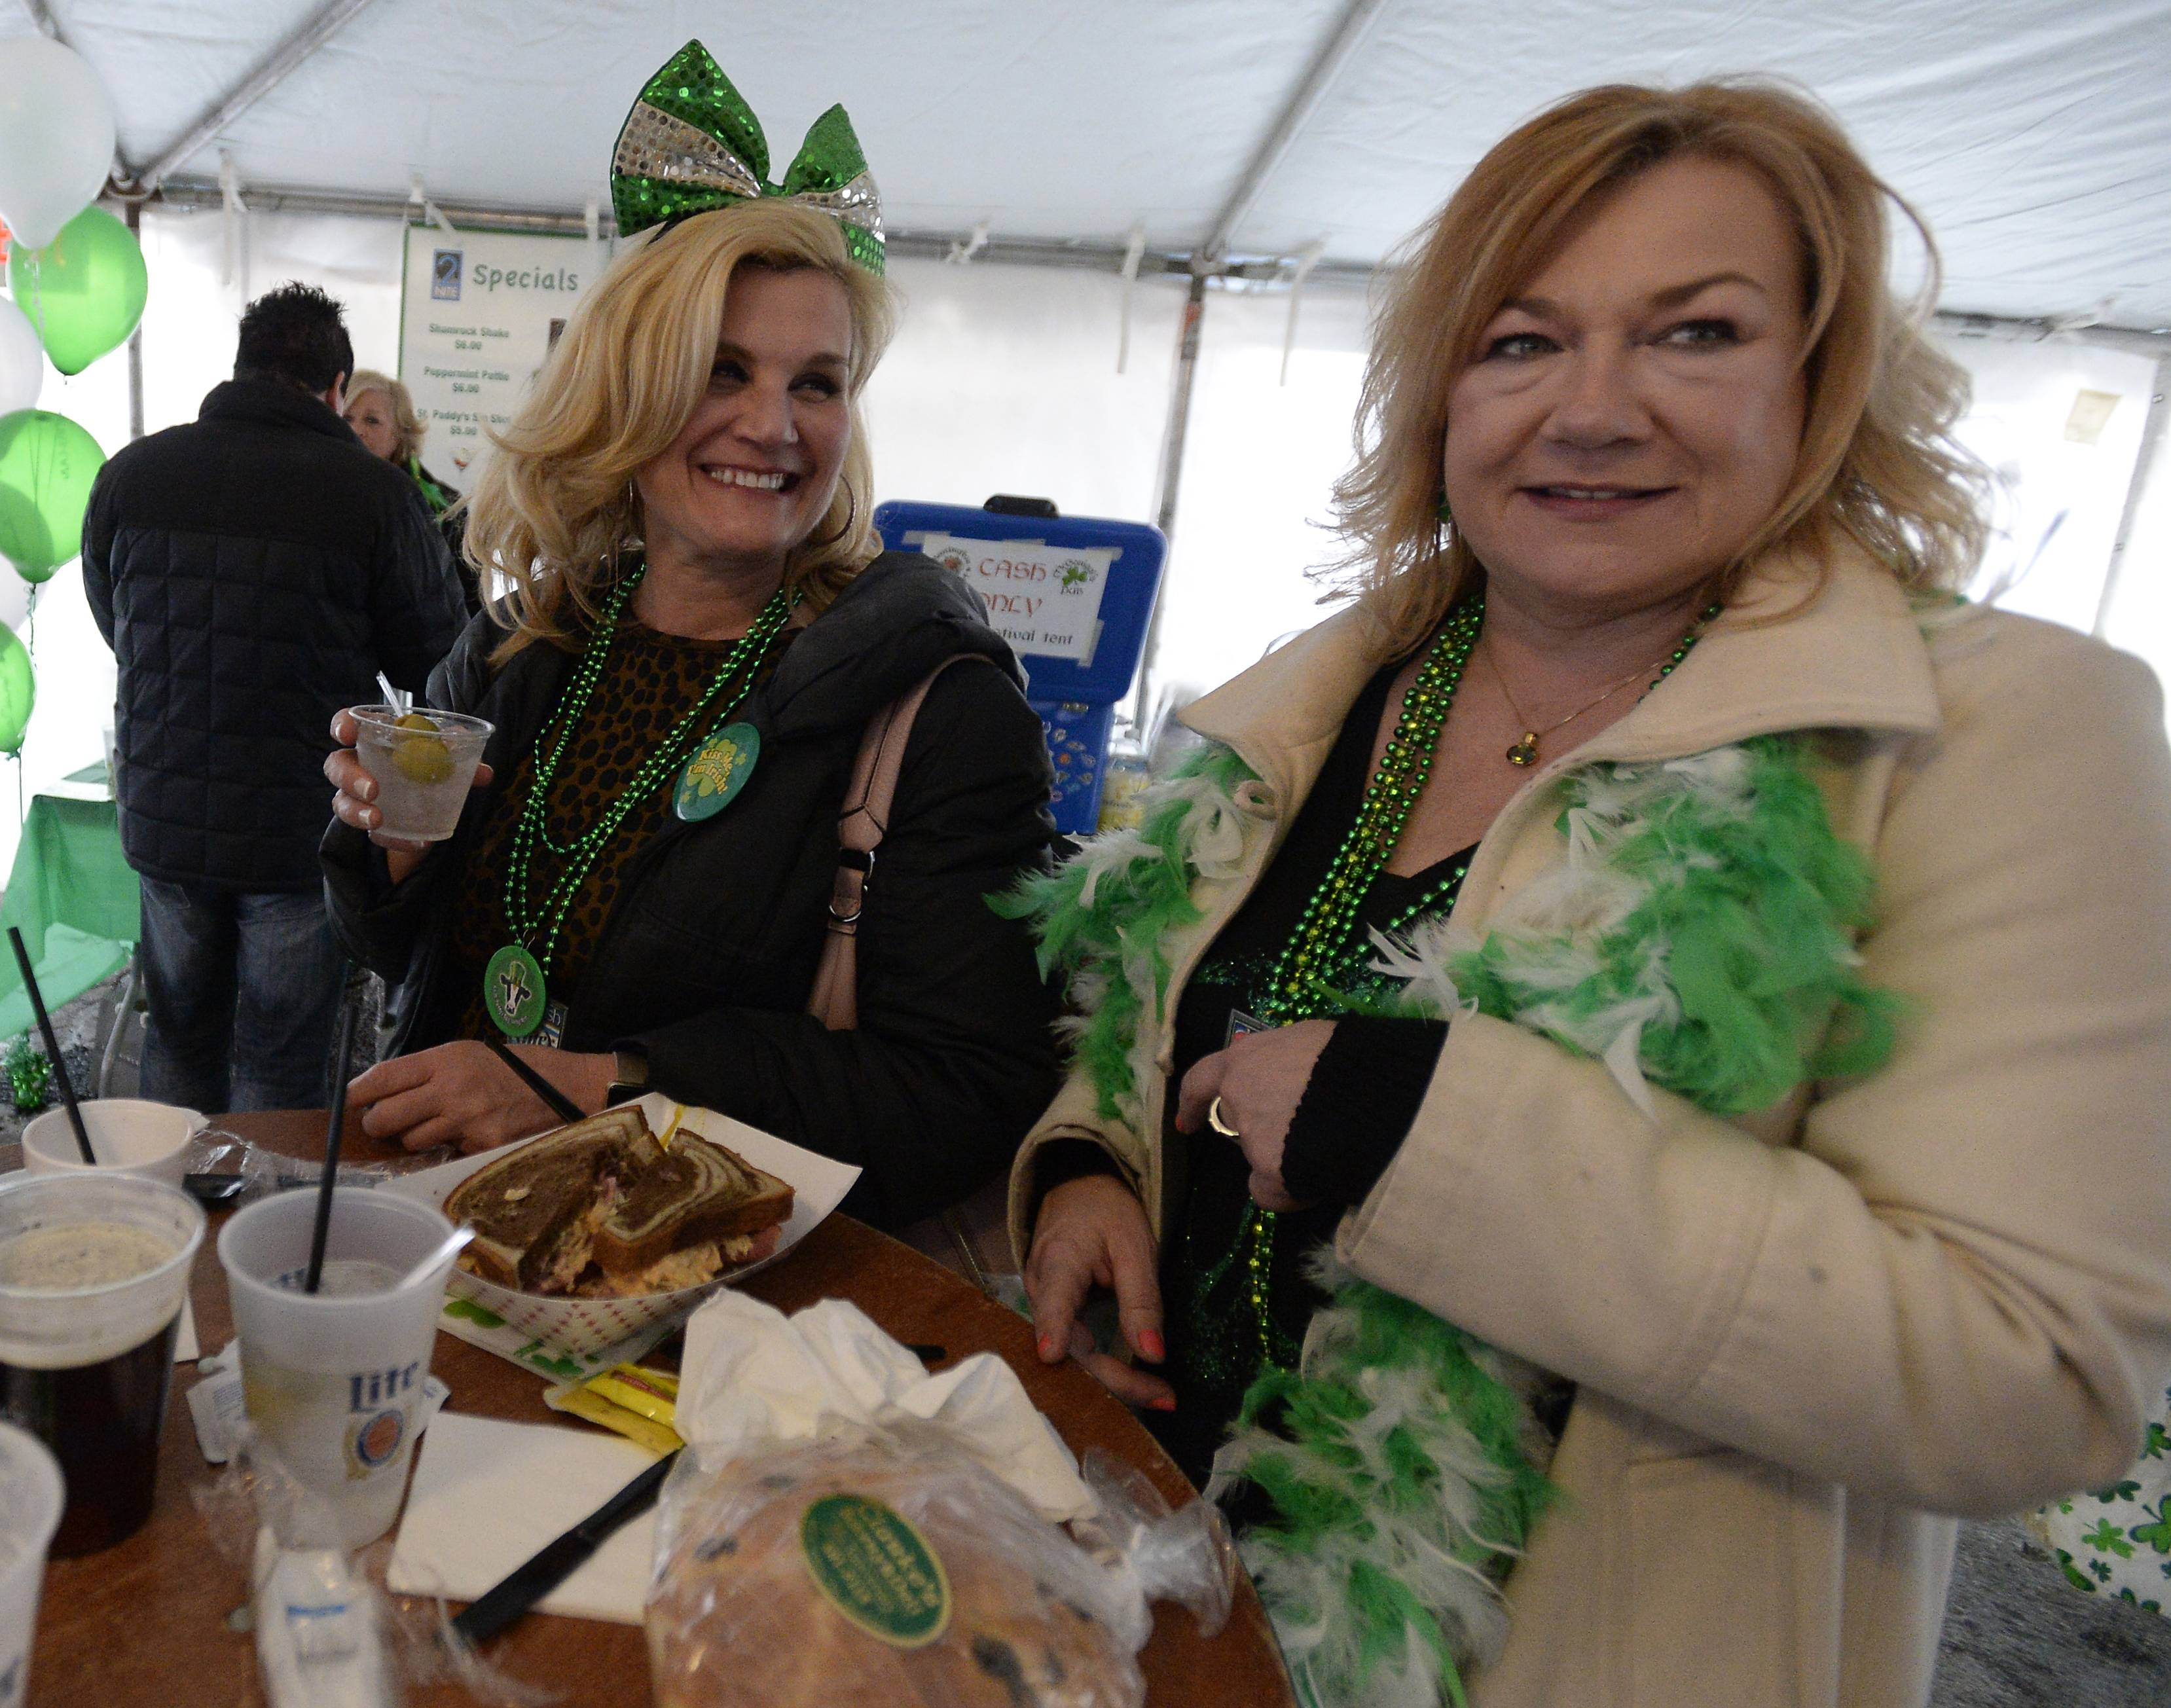 Annette dePaola of Barrington, left, and Tara McNally of Glendale Heights donned their Irish green while sampling beer and corn beef sandwiches during Barrington Celtic Fest last year. The eighth annual edition of the fest is set for this weekend in downtown Barrington.